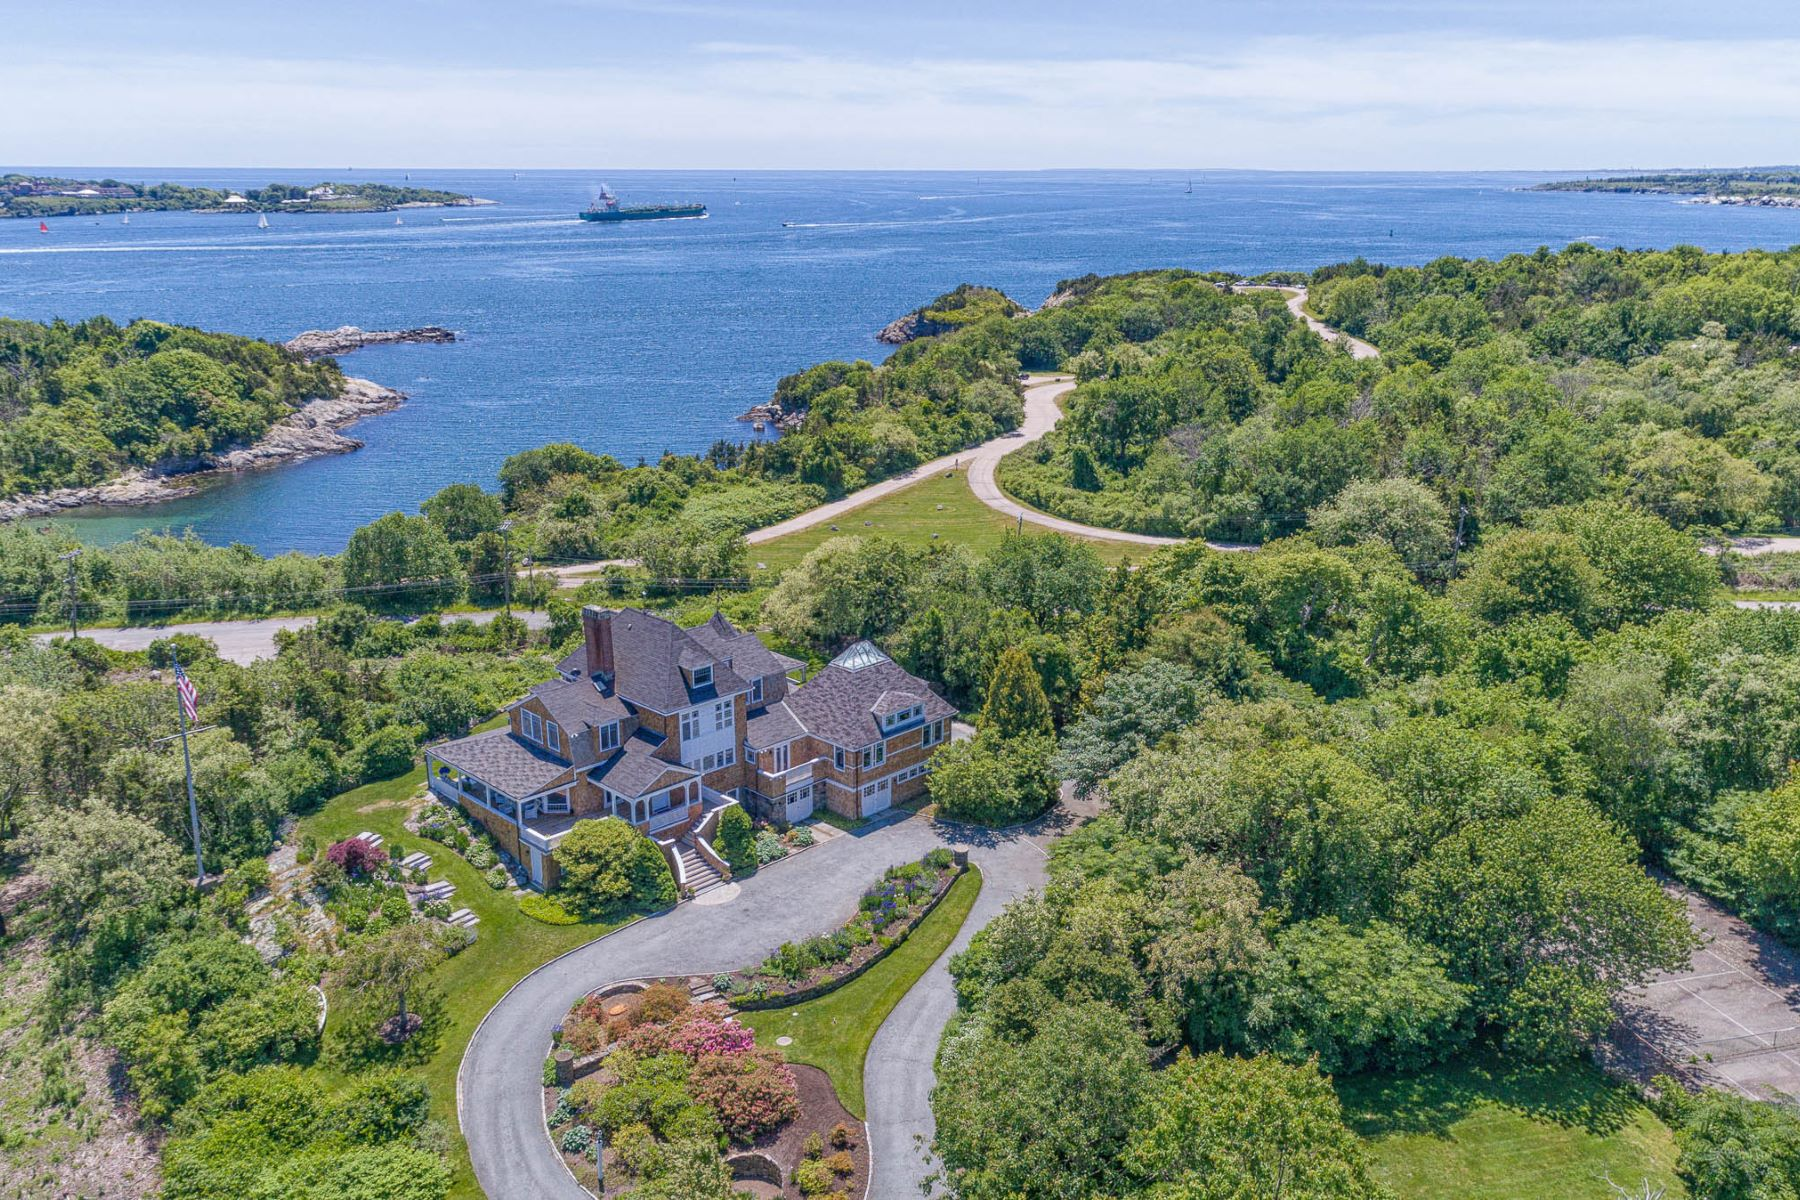 Single Family Homes for Sale at 27 Newport Street Jamestown, Rhode Island 02835 United States